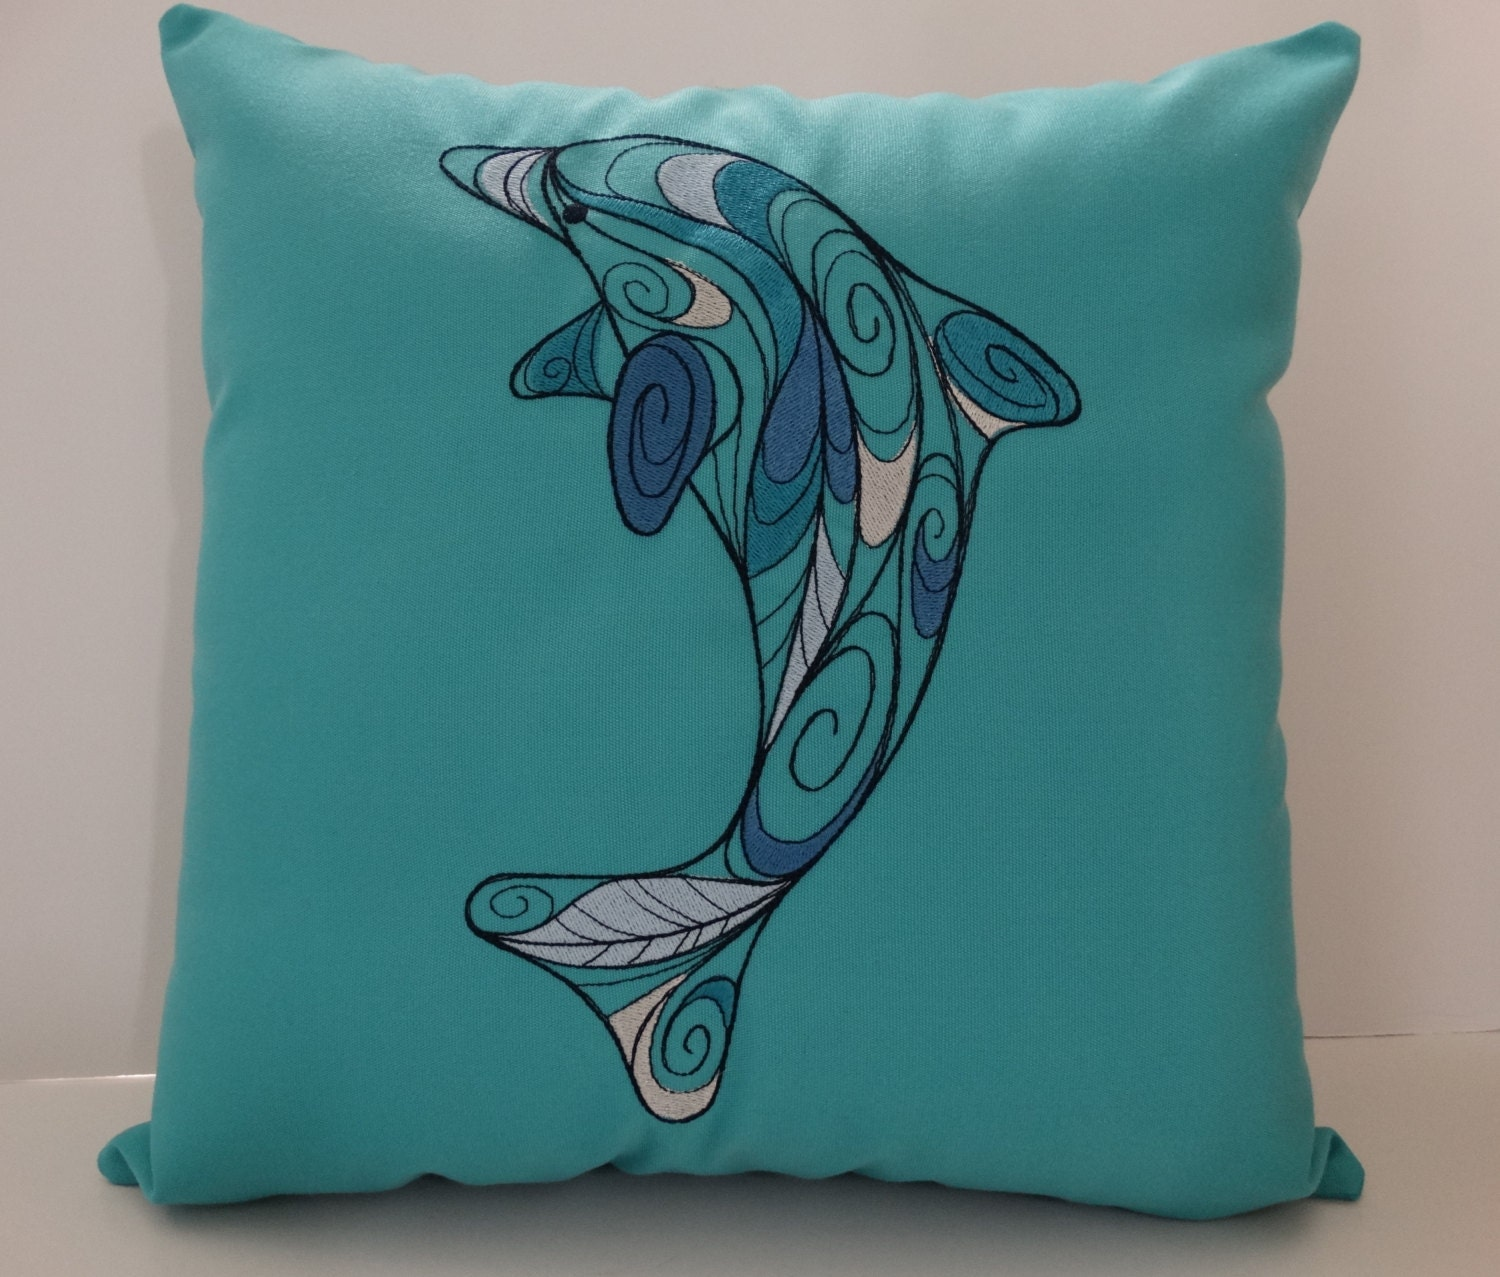 blanket shocking cushion pillow facts beach chinese shop inspired gallery furniture about pillows throw